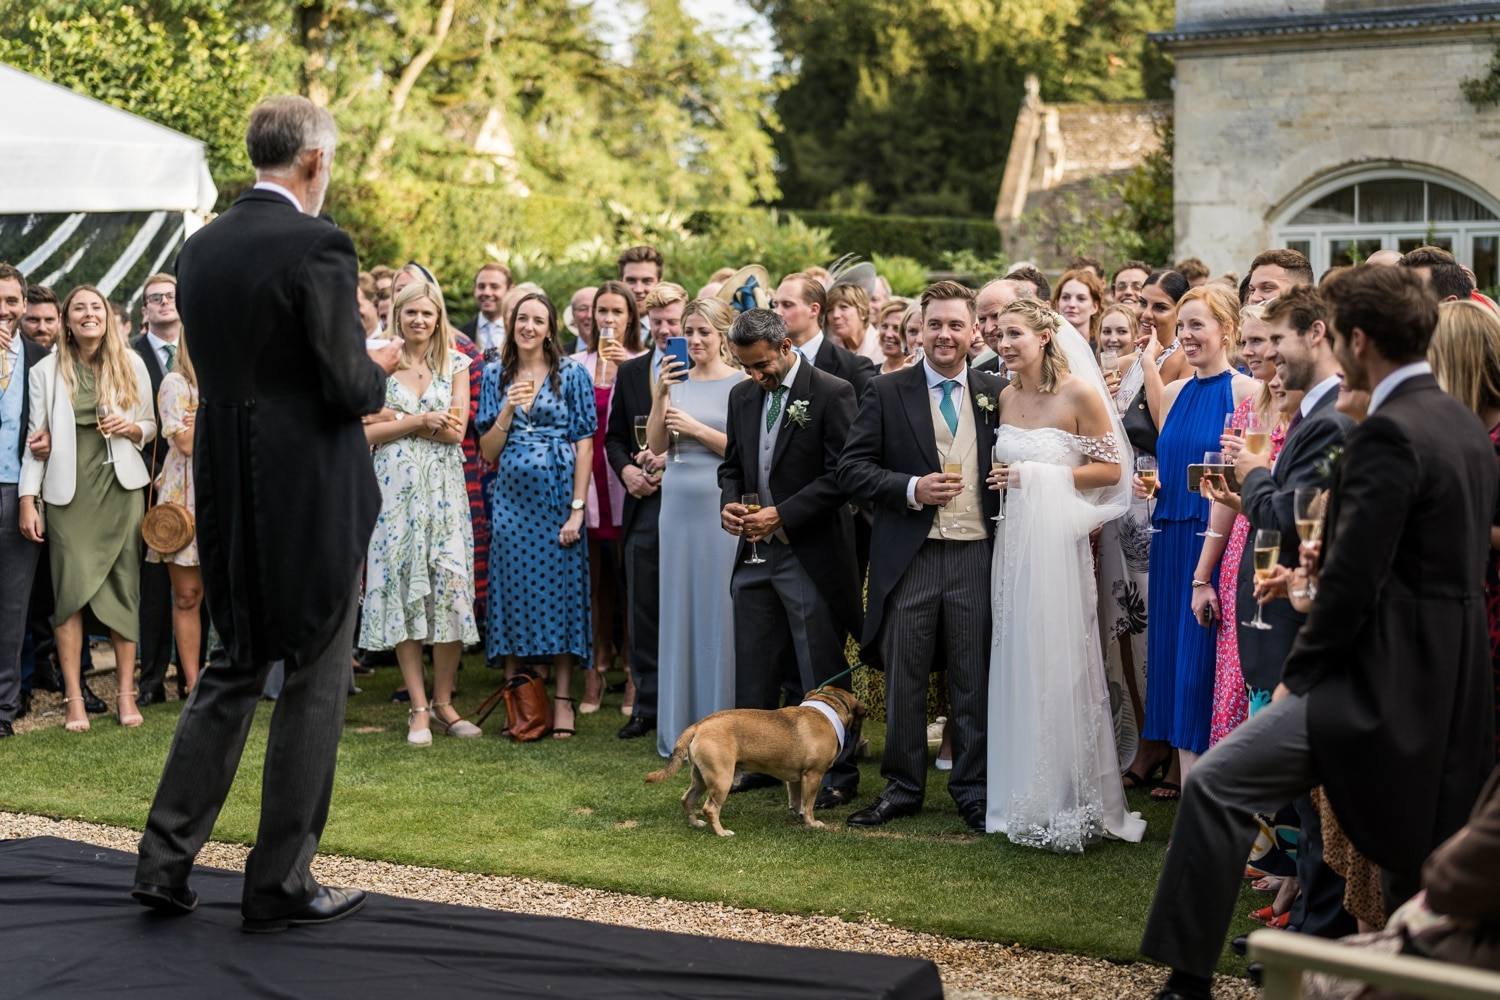 Wedding speeches in the garden